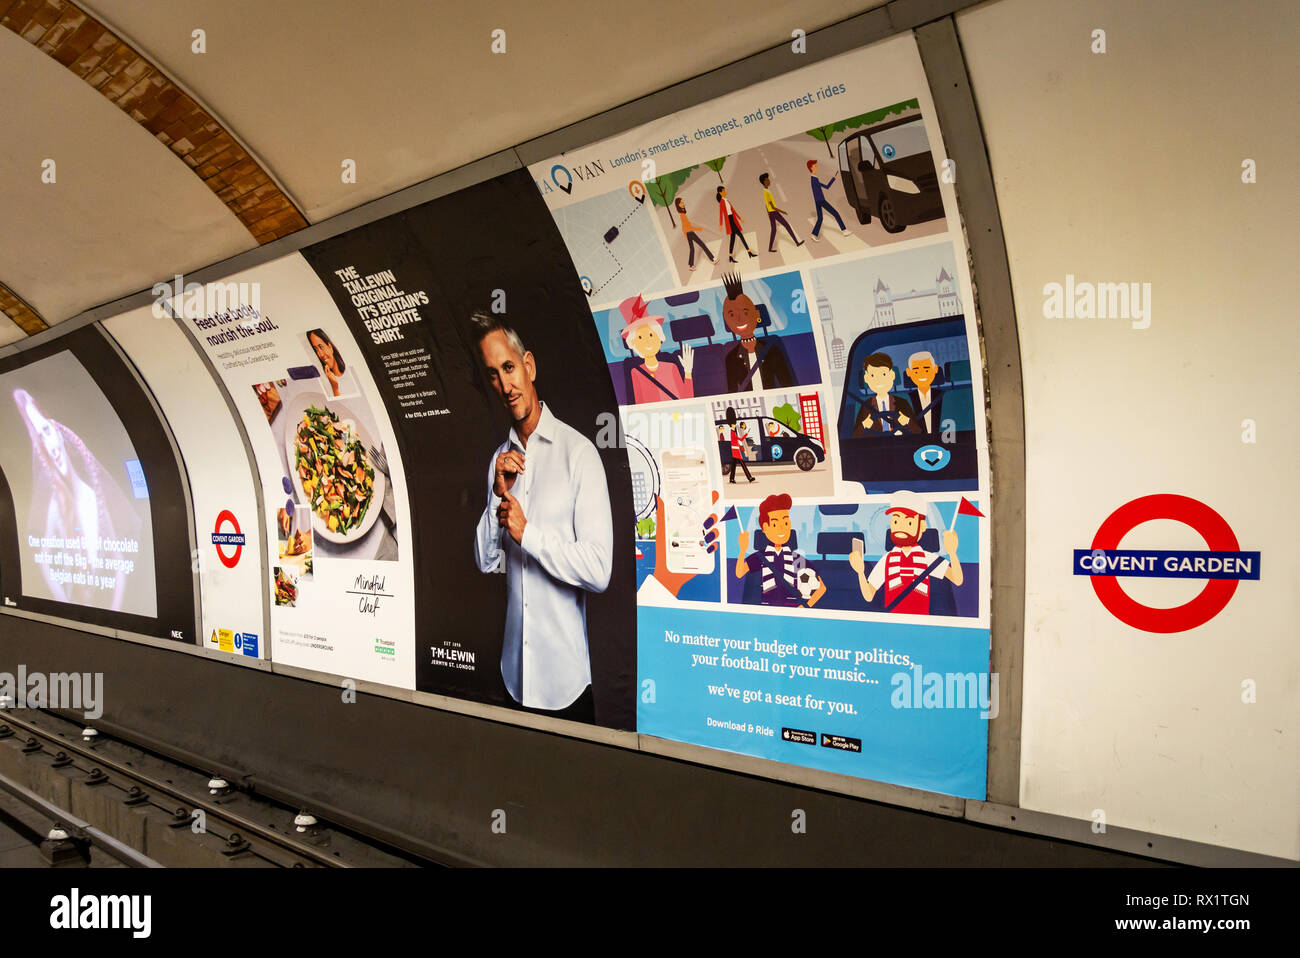 Billboard Advertising posters on the Underground Tube at Covent Garden, London - Stock Image